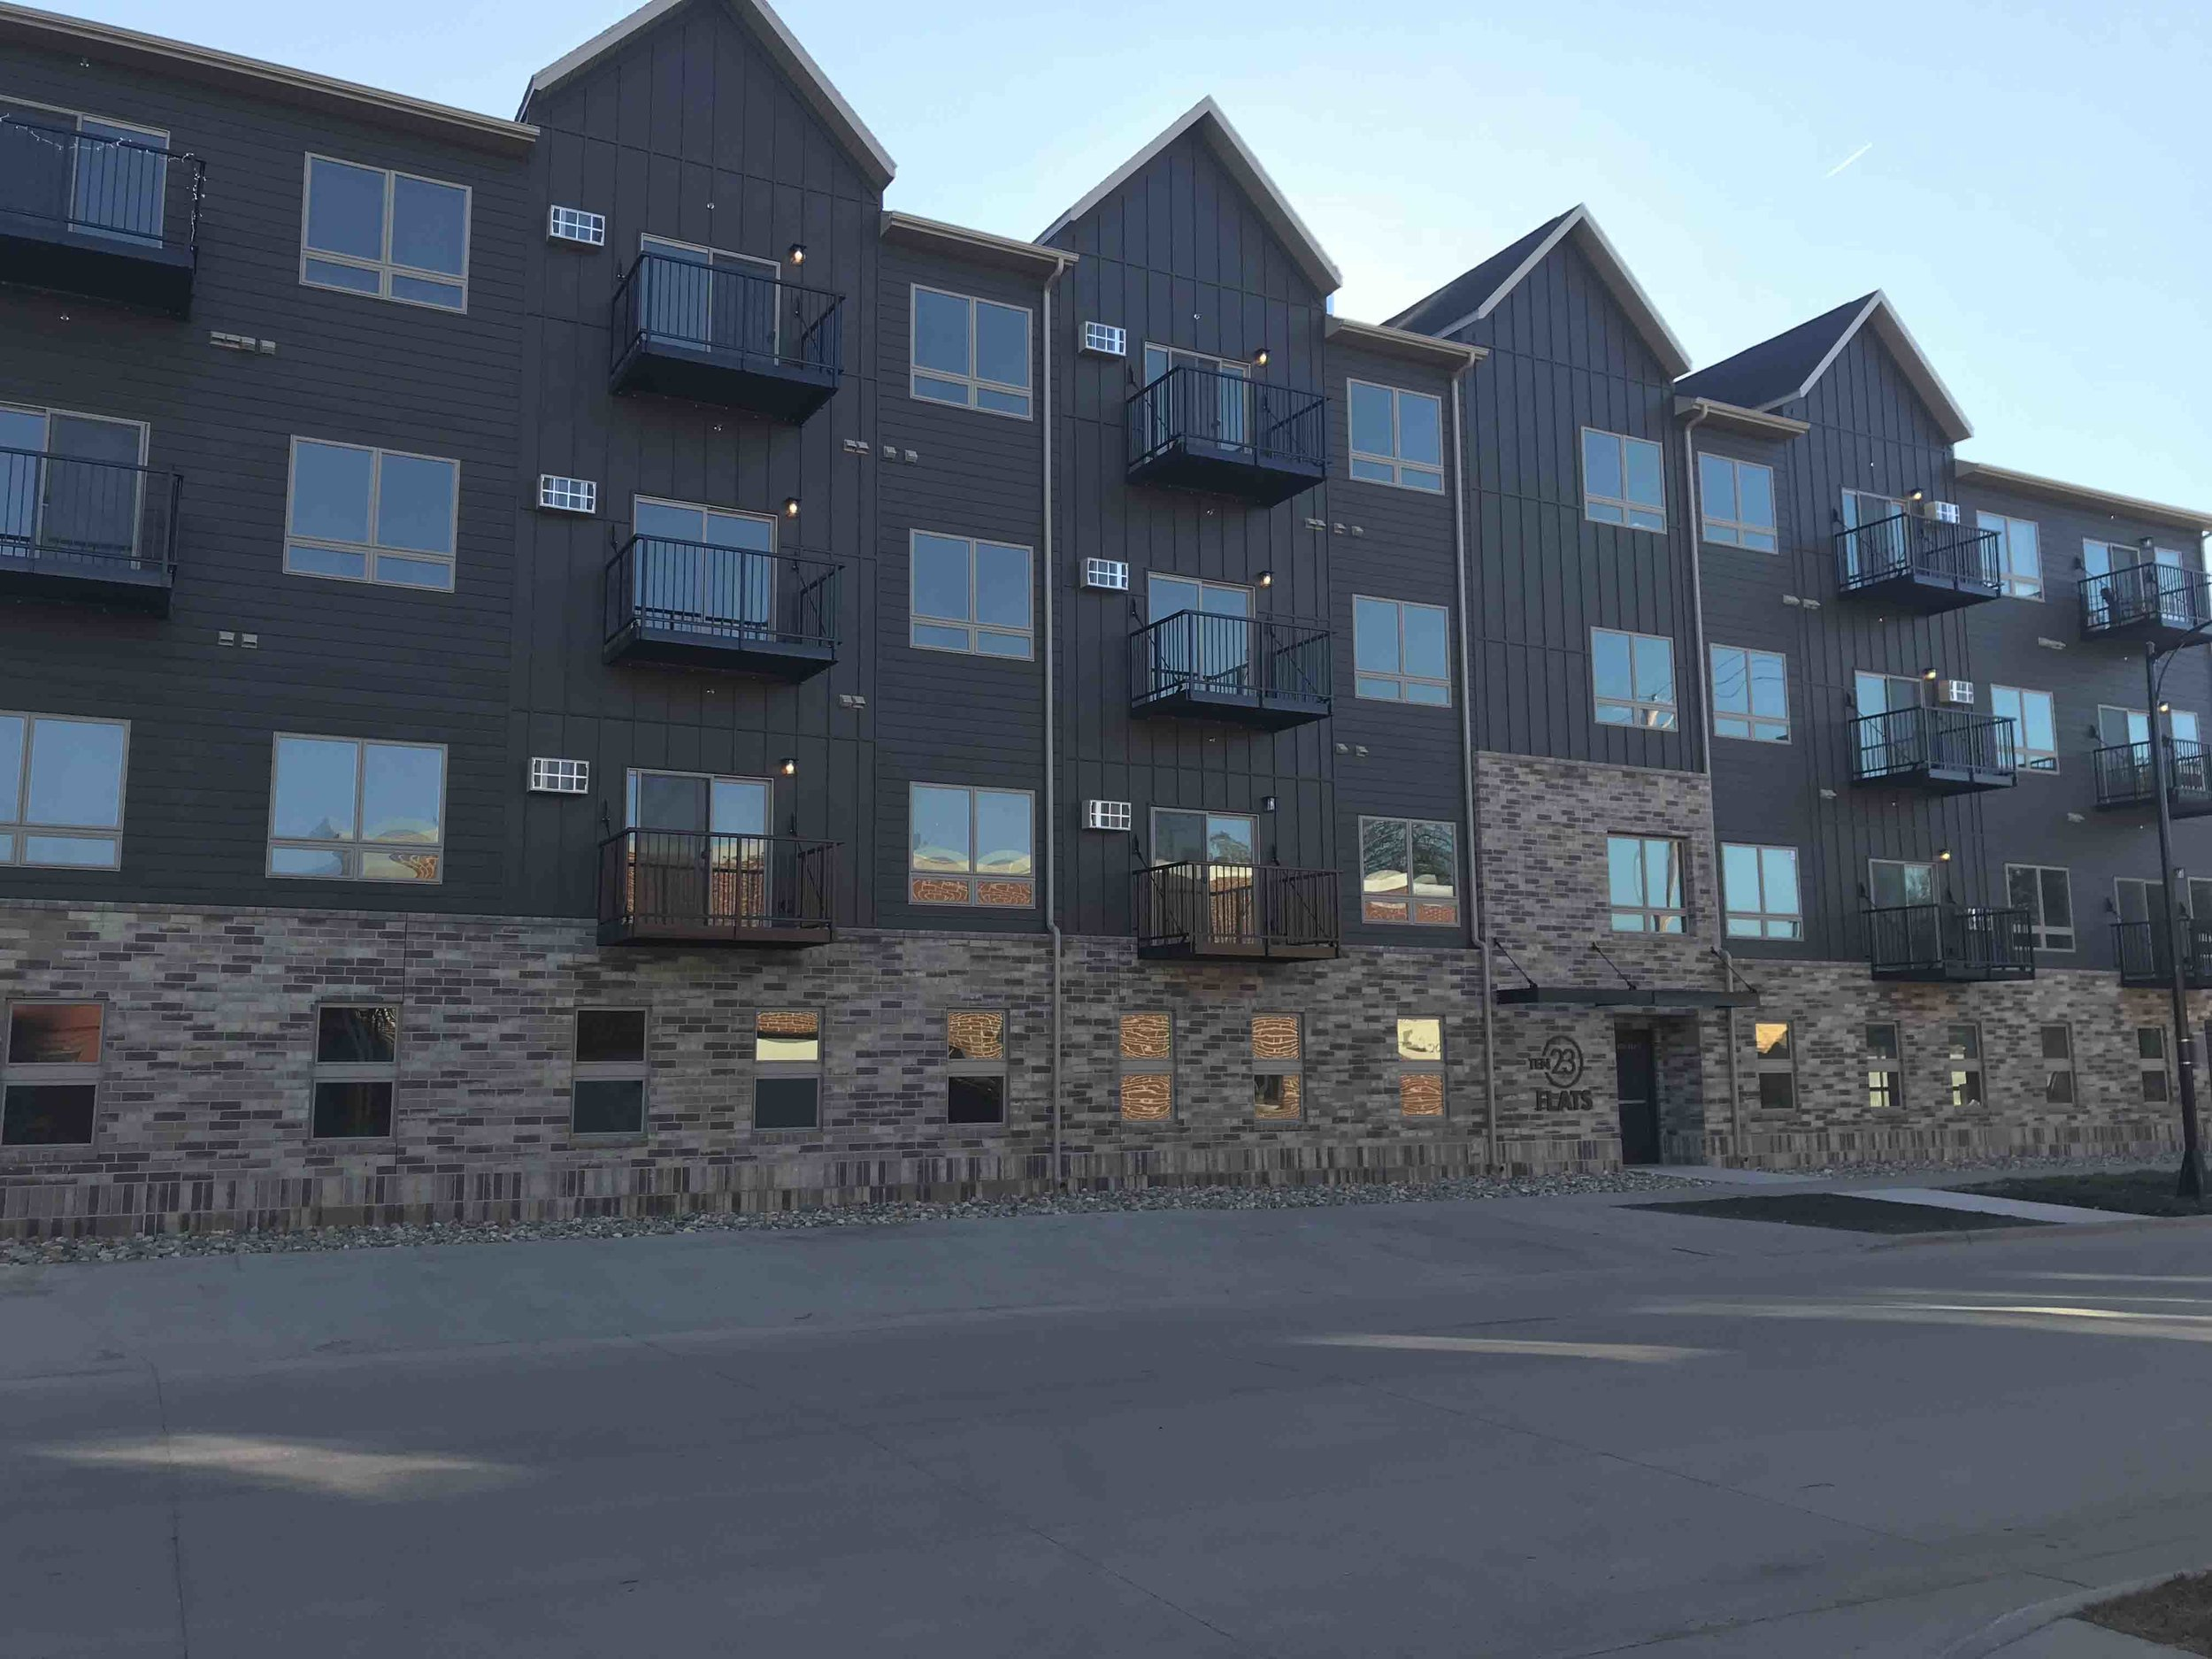 1023 Flats - click here to learn more